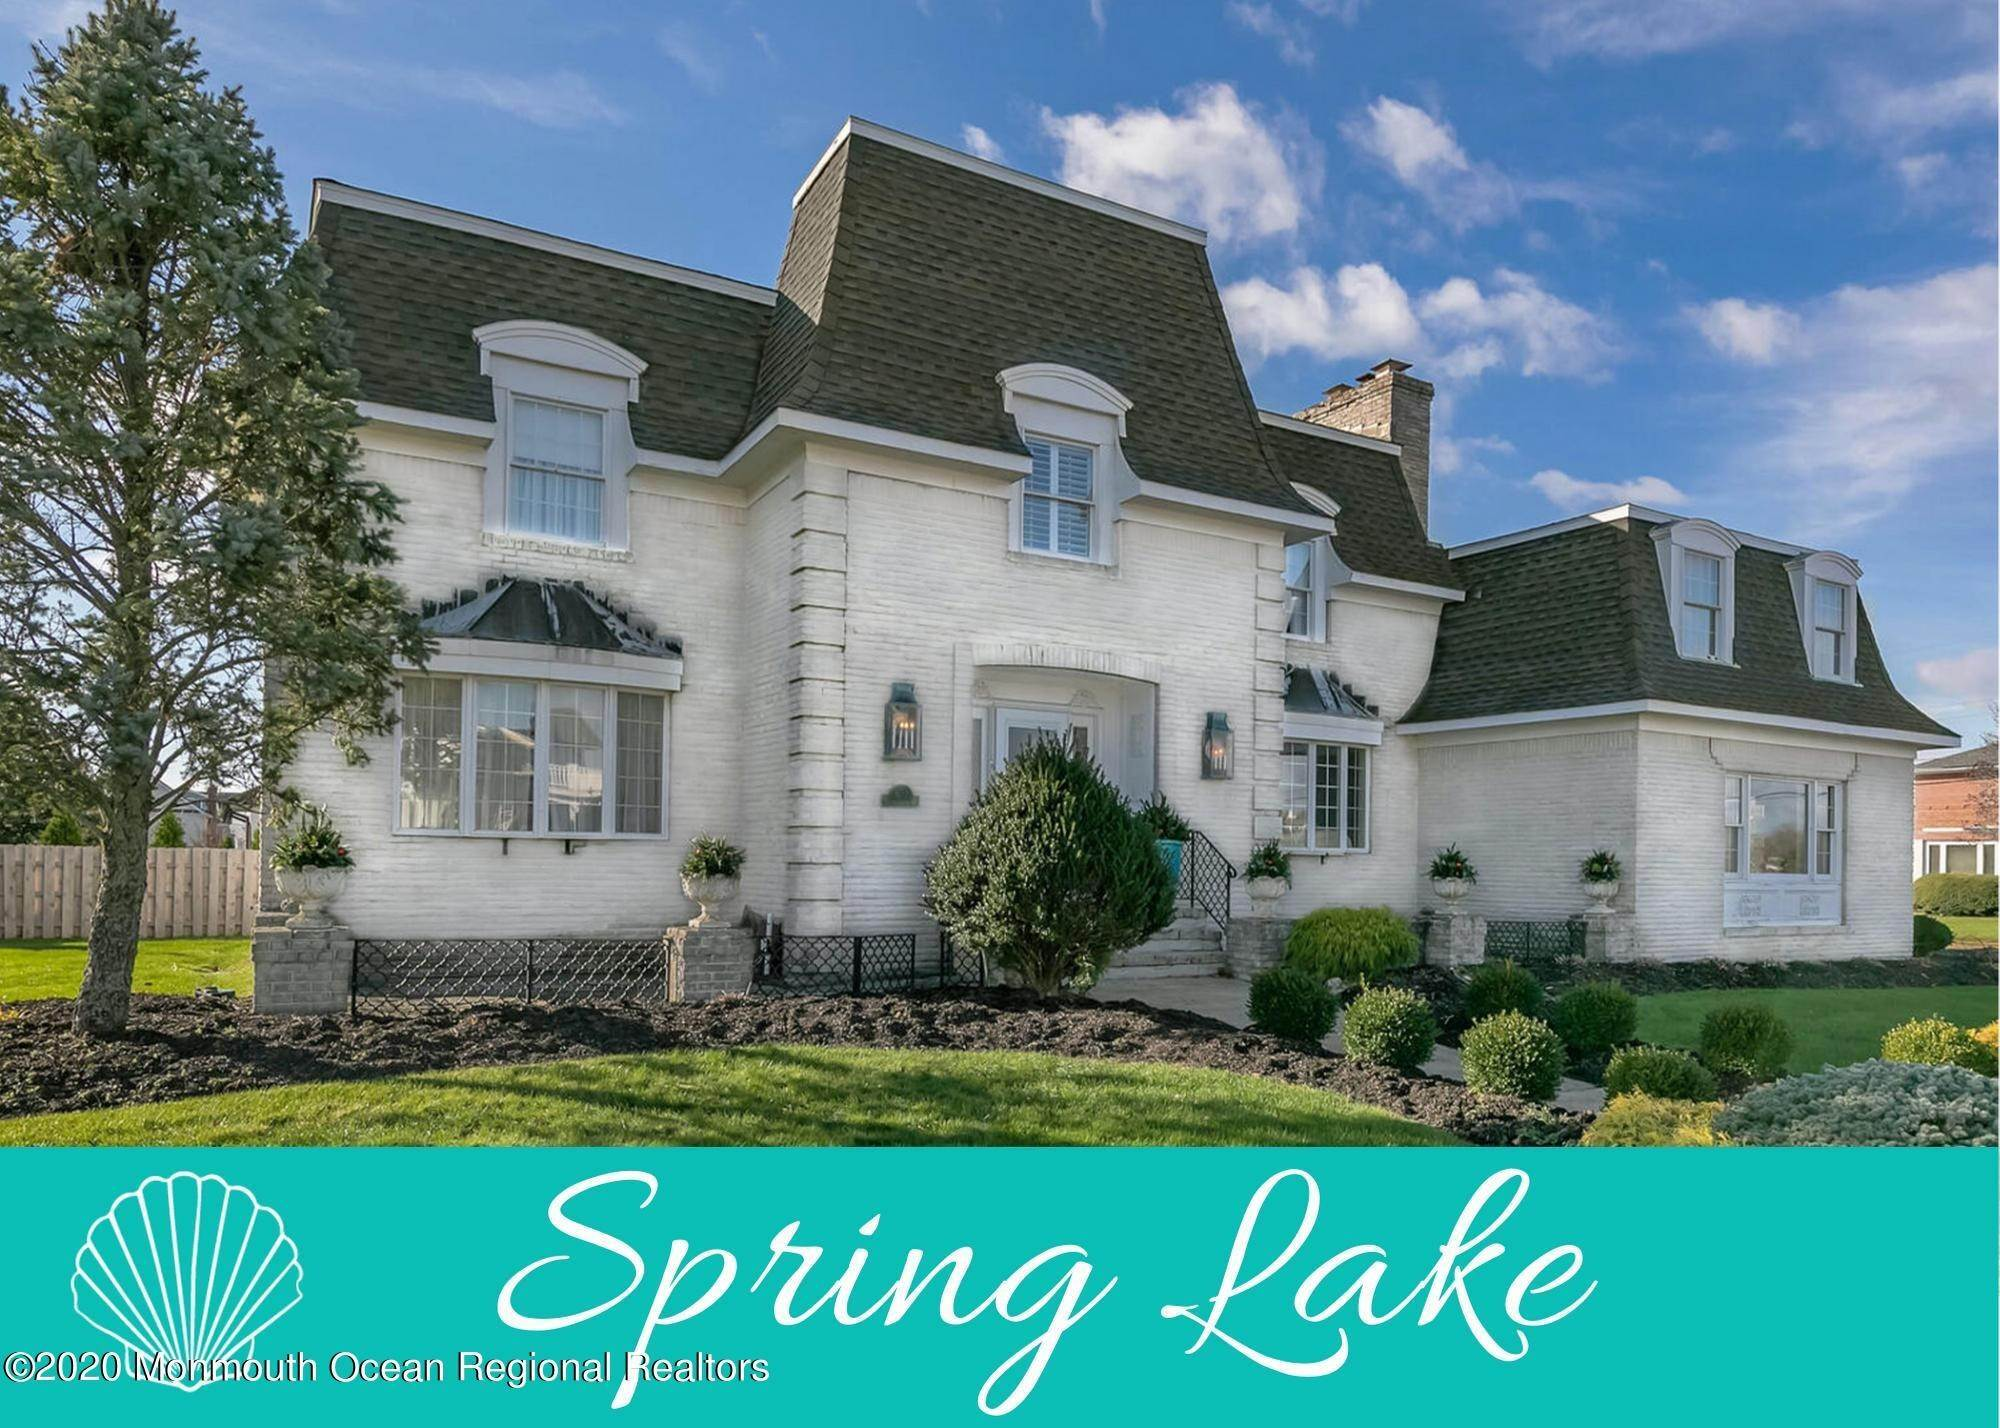 Single Family Homes for Sale at 1 Monmouth Shire Lane Spring Lake, New Jersey 07762 United States